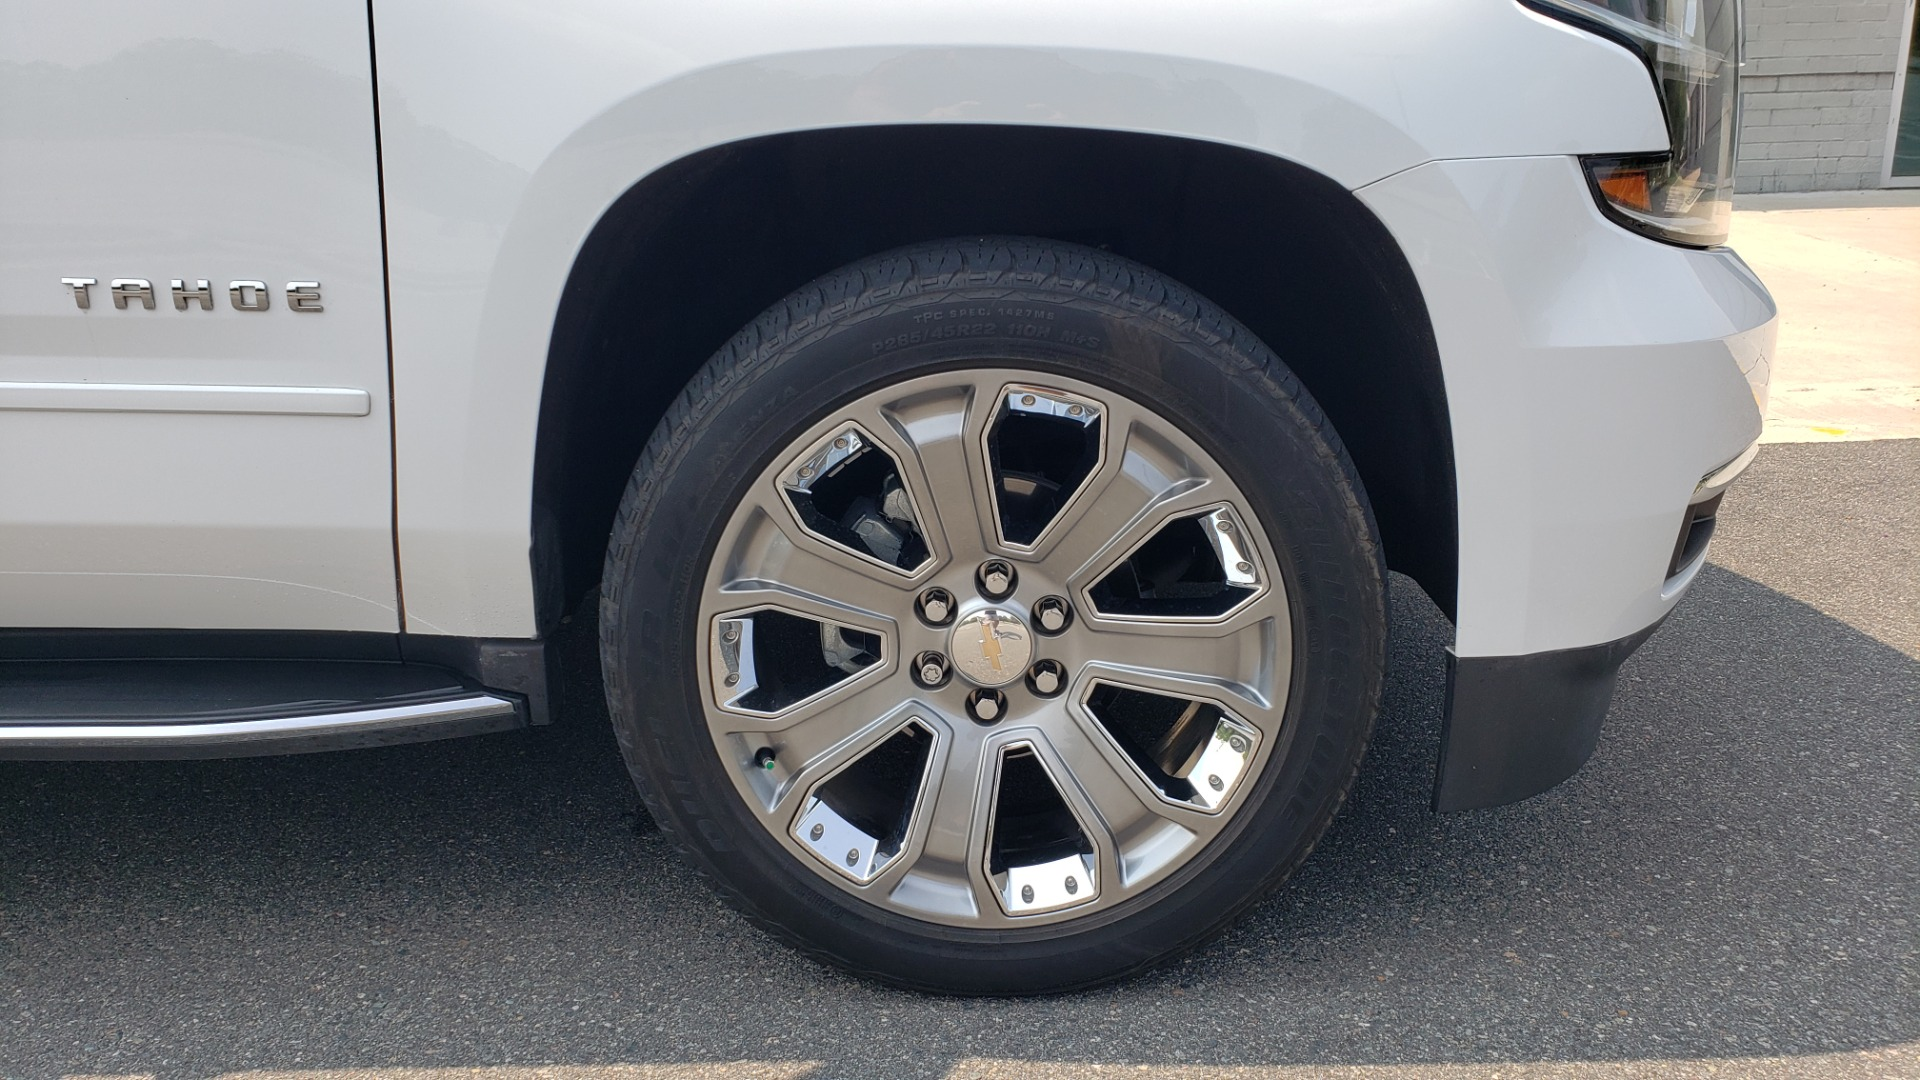 Used 2018 Chevrolet TAHOE PREMIER 4WD / NAV / SUNROOF / BOSE / 3-ROW / HUD / REARVIEW for sale $63,995 at Formula Imports in Charlotte NC 28227 85